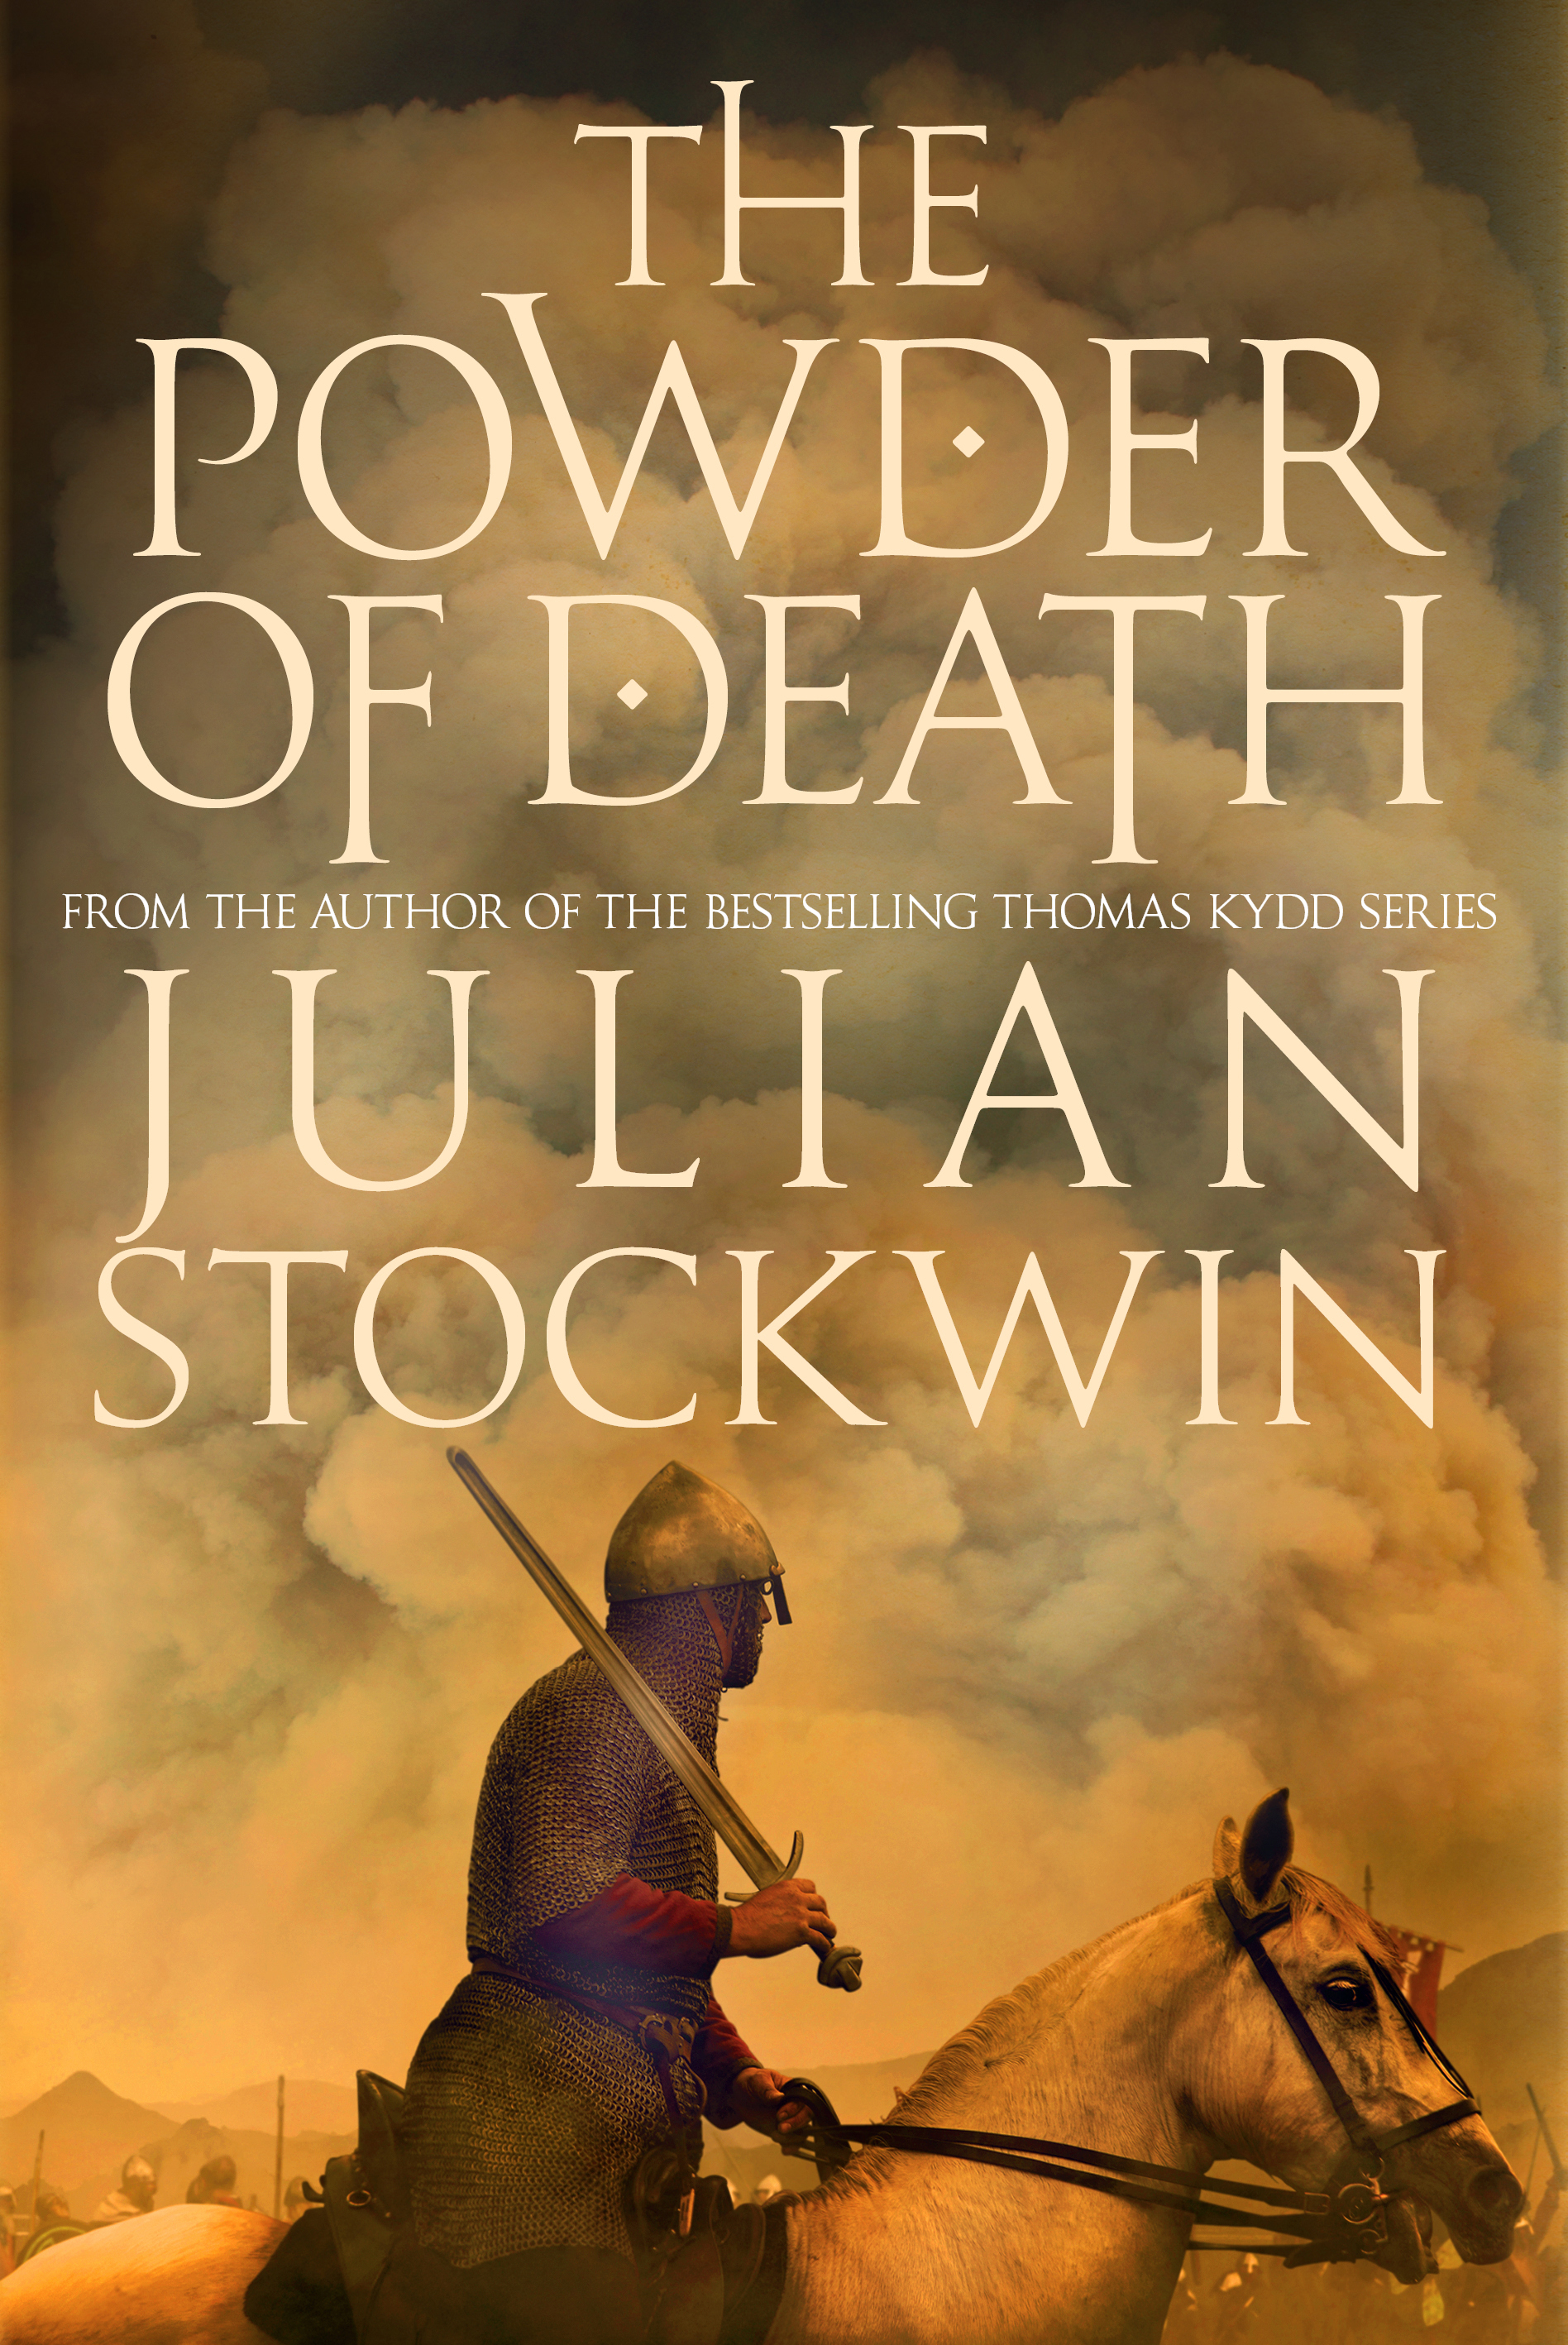 THE POWDER OF DEATH  Historical fiction, 384 pages Allison & Busby, August 2016  The dramatic re-discovery of gunpower after it was deliberately hidden for centuries. Adventure story based on facts.